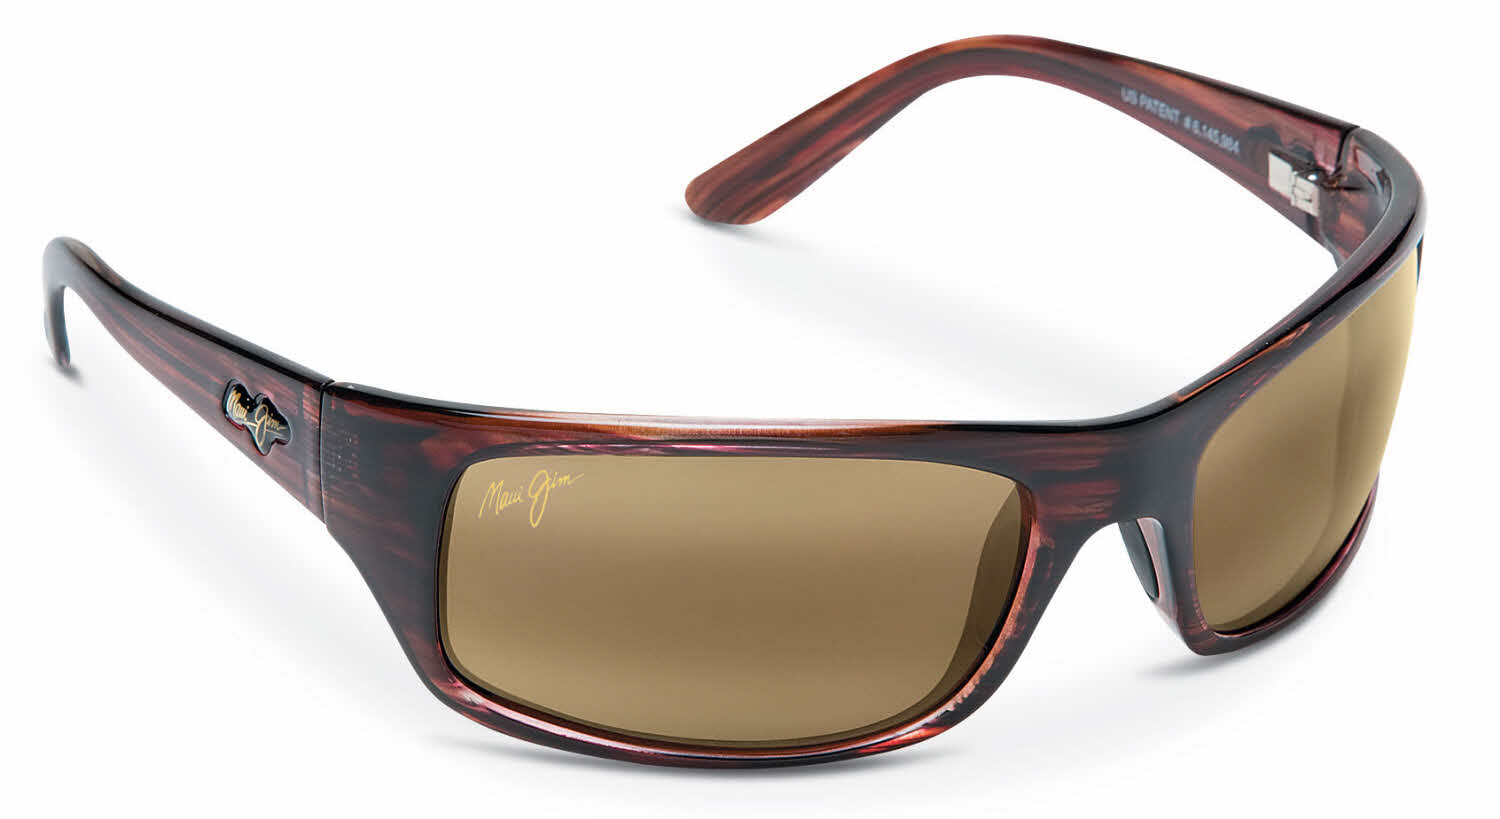 Mj Sport Sunglasses Price  maui jim prescription sunglasses free shipping